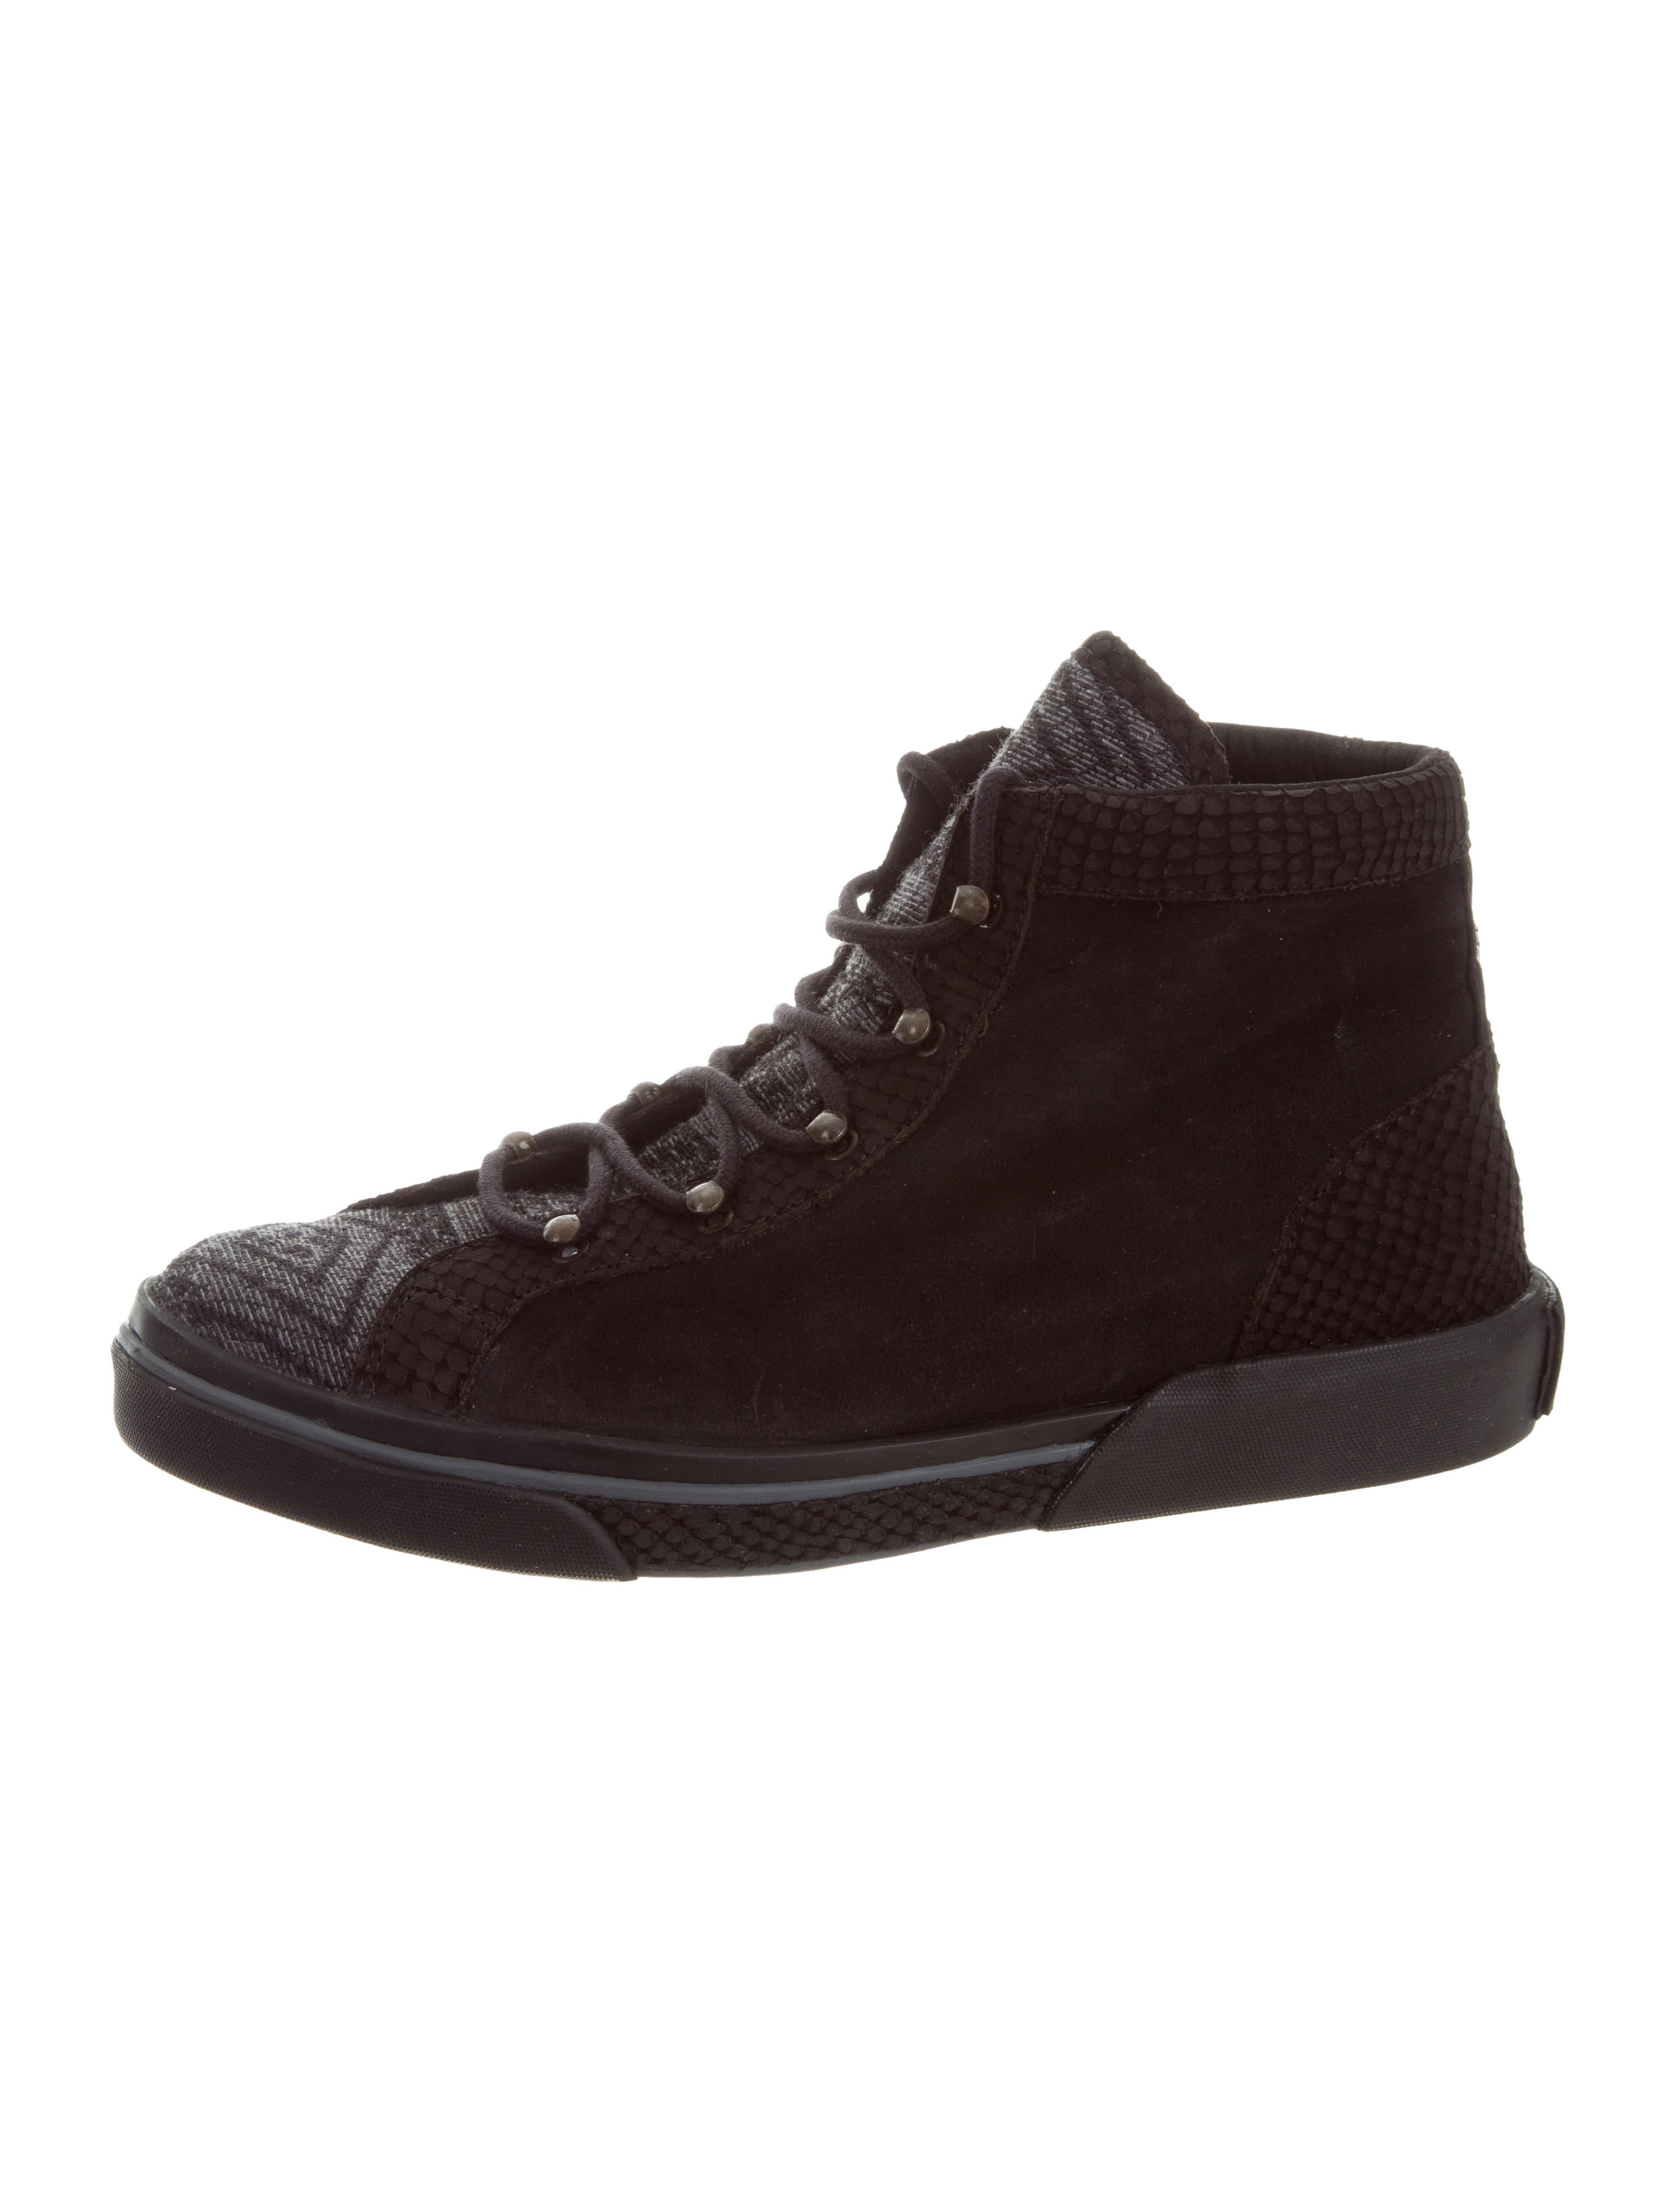 outlet for sale Cobra Society Leah High-Top Sneakers w/ Tags for sale online store clearance ebay clearance store 66WByK0